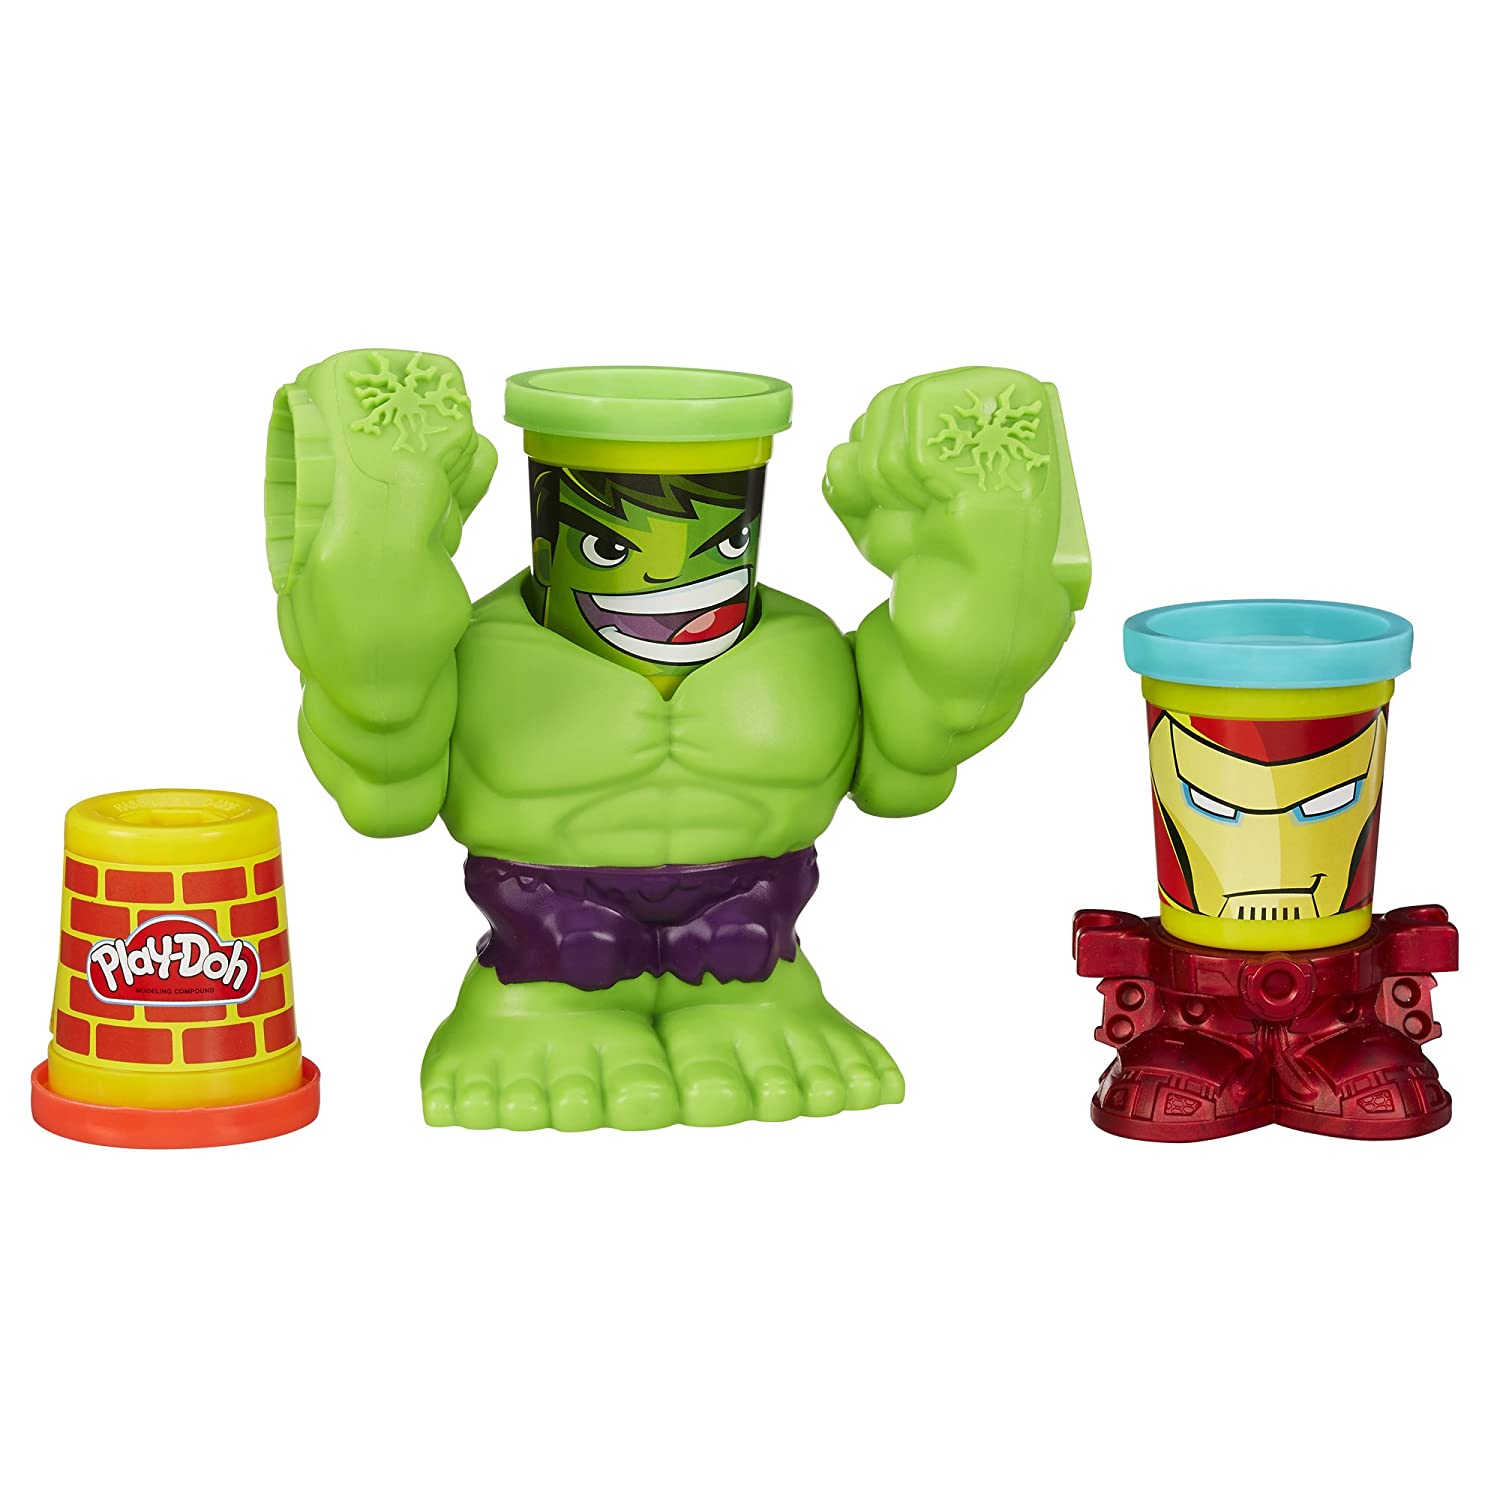 Play-Doh Smashdown Hulk Featuring Marvel Can-Heads B0308